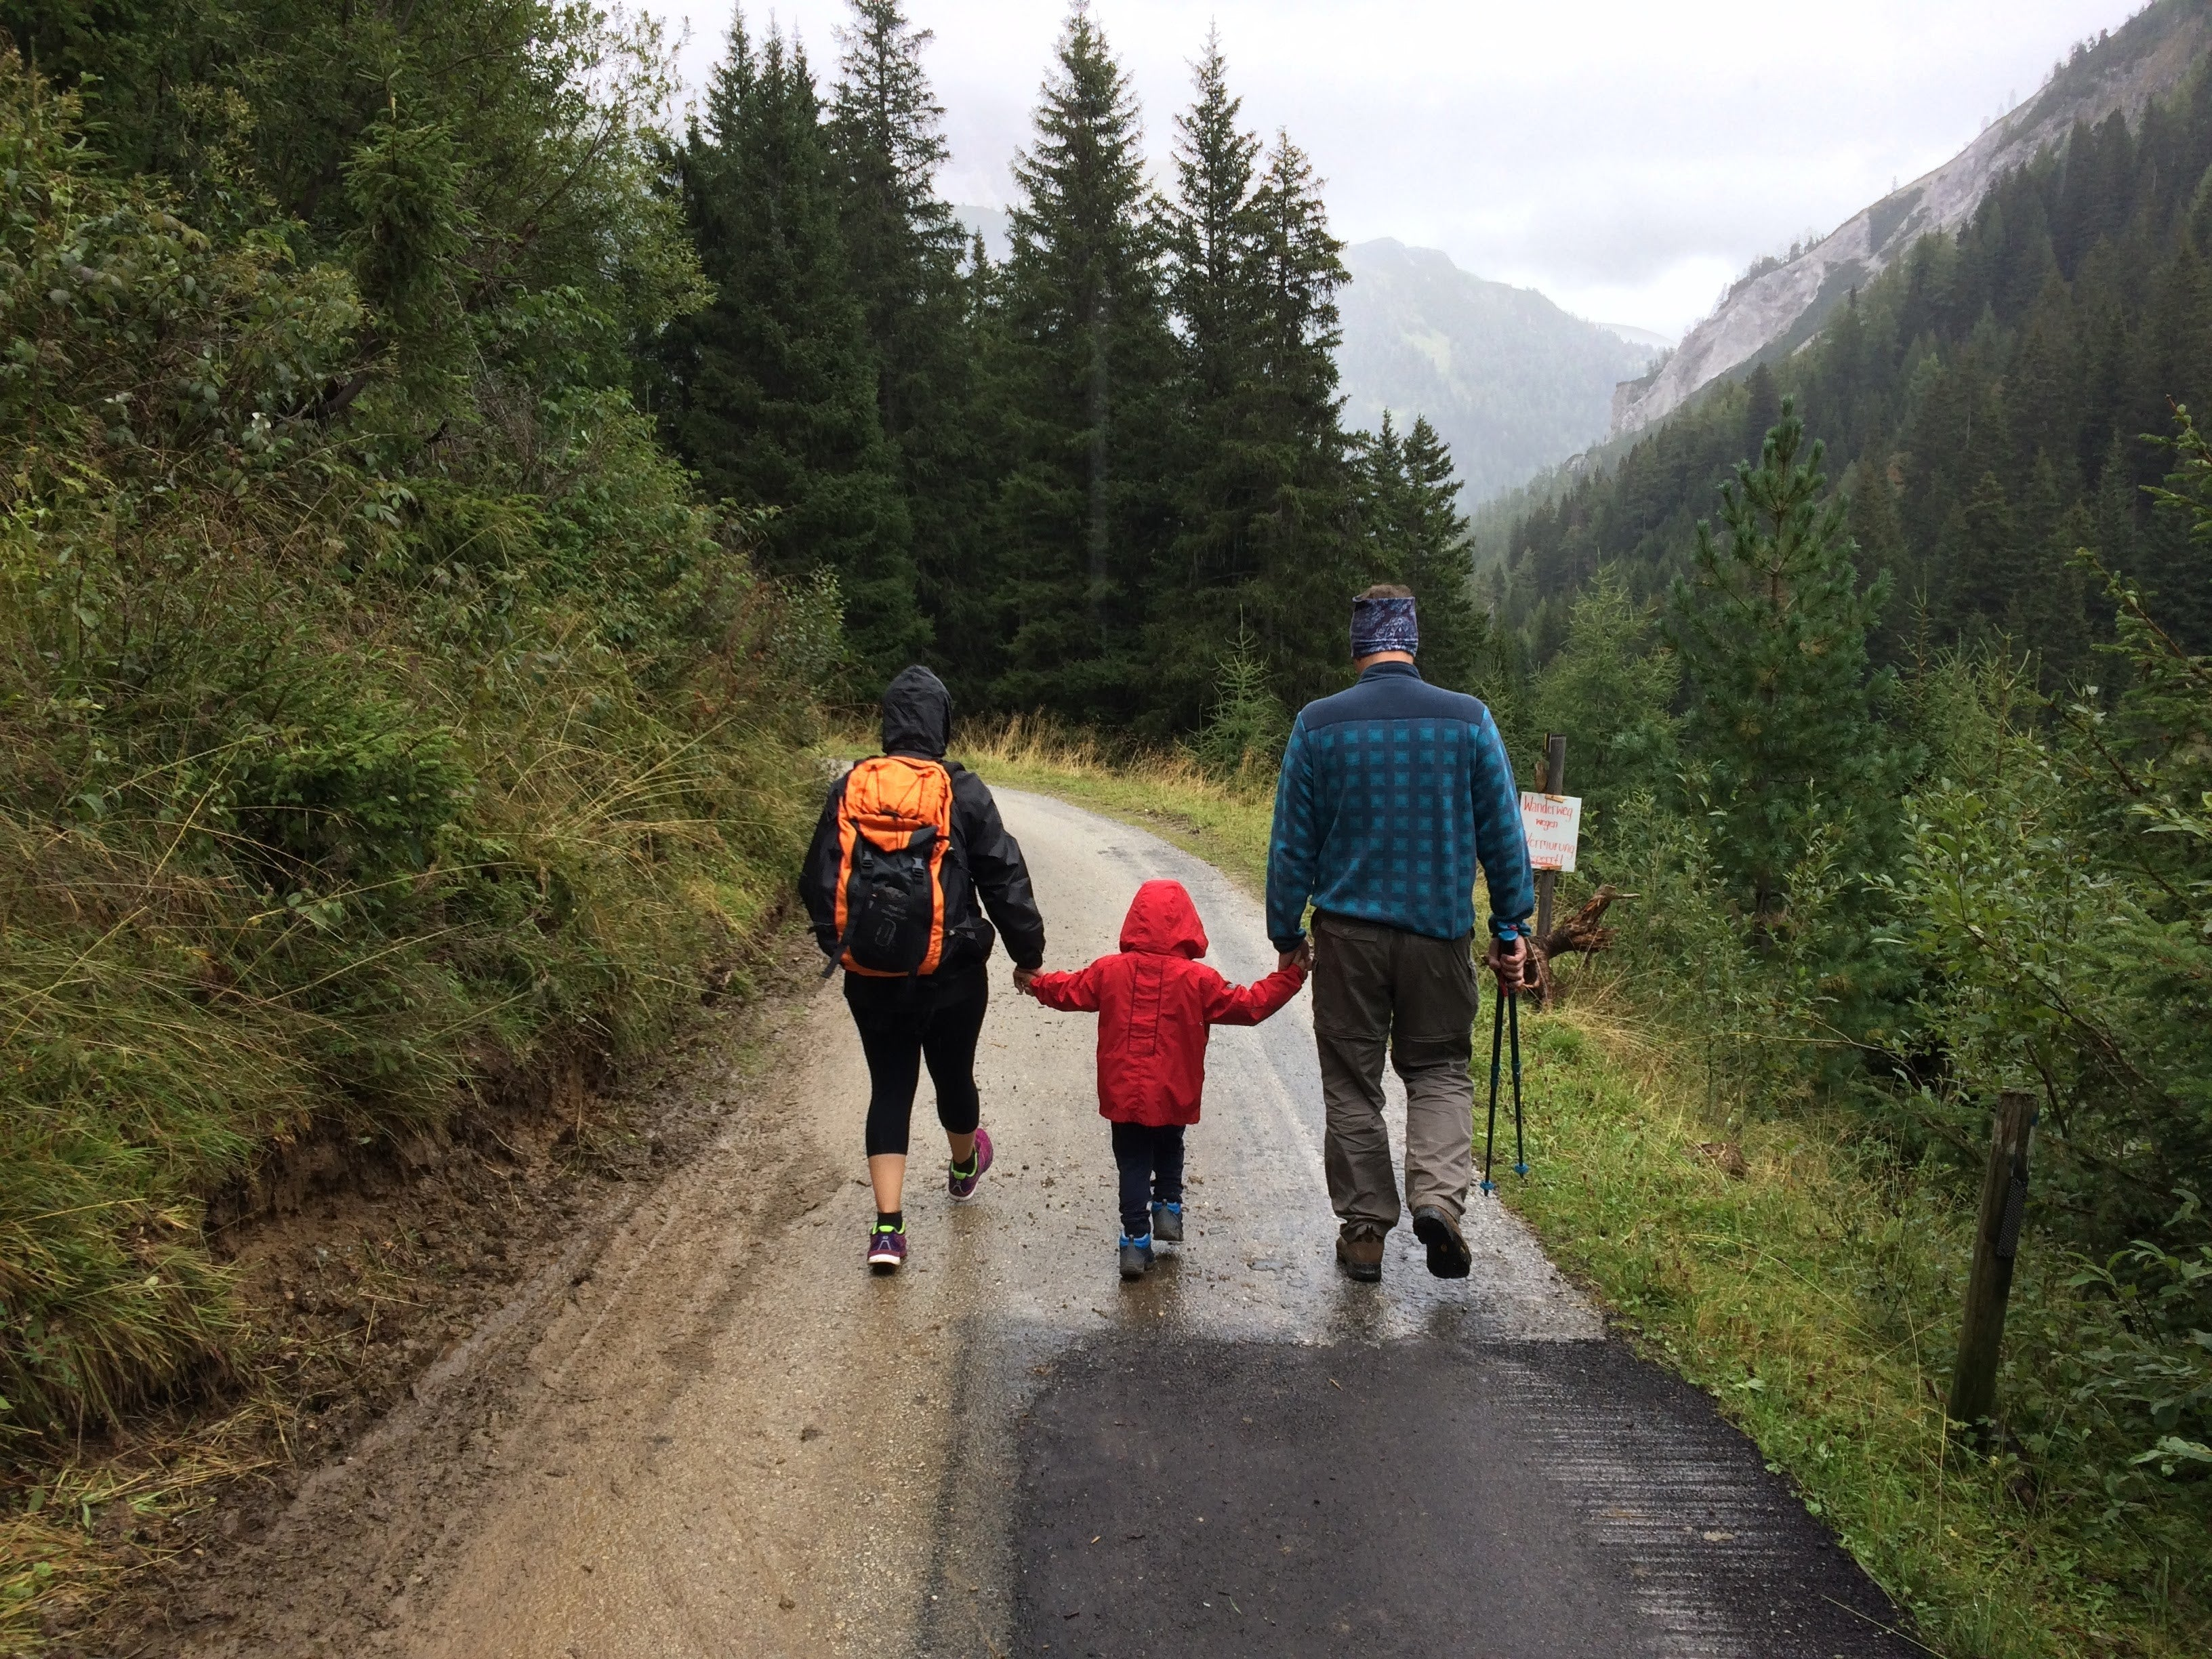 Parents traveling with their kid in the mountains